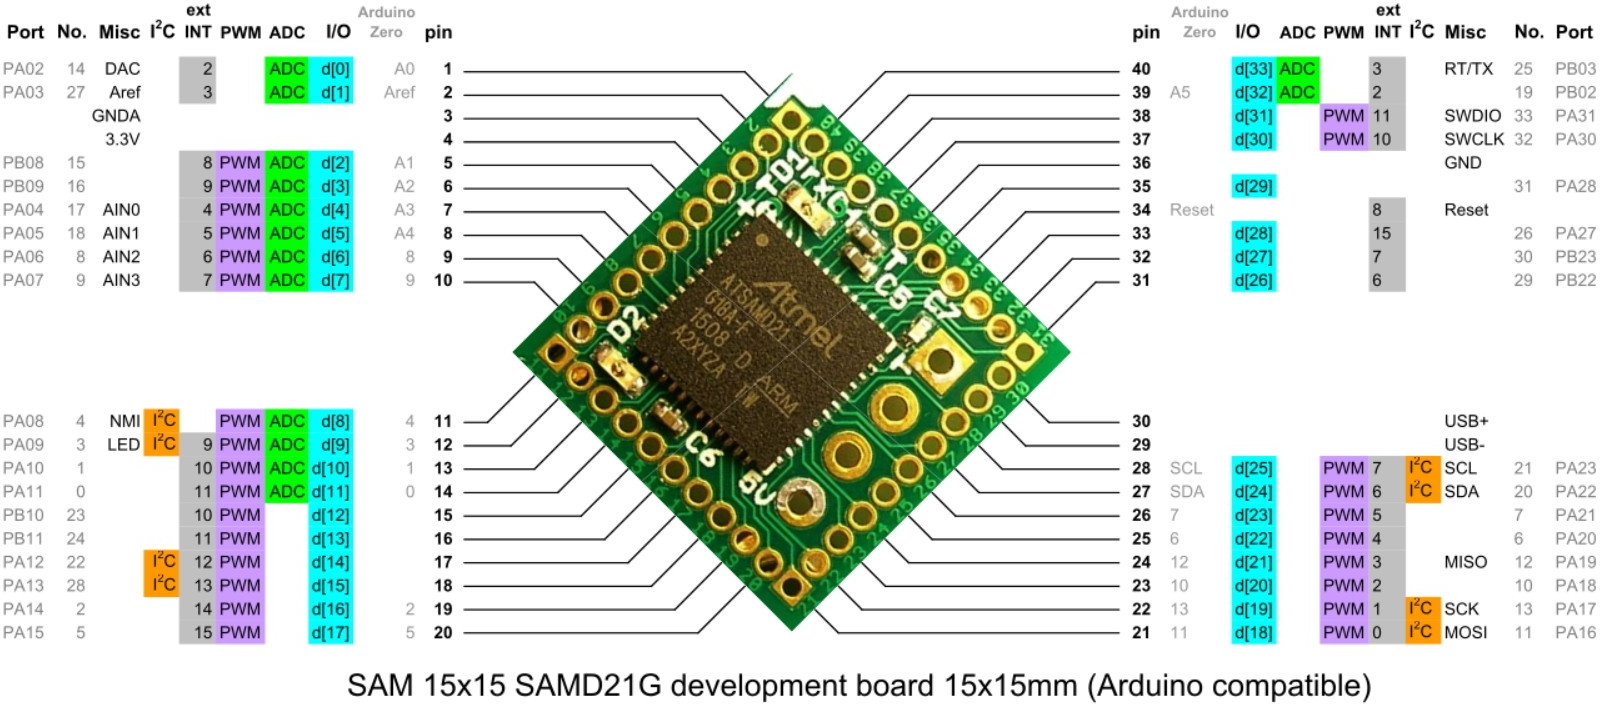 usb pin diagram labelled of moss plant sam 15x15 is a tiny arduino zero compatible board based on atmel samd21g18 mcu